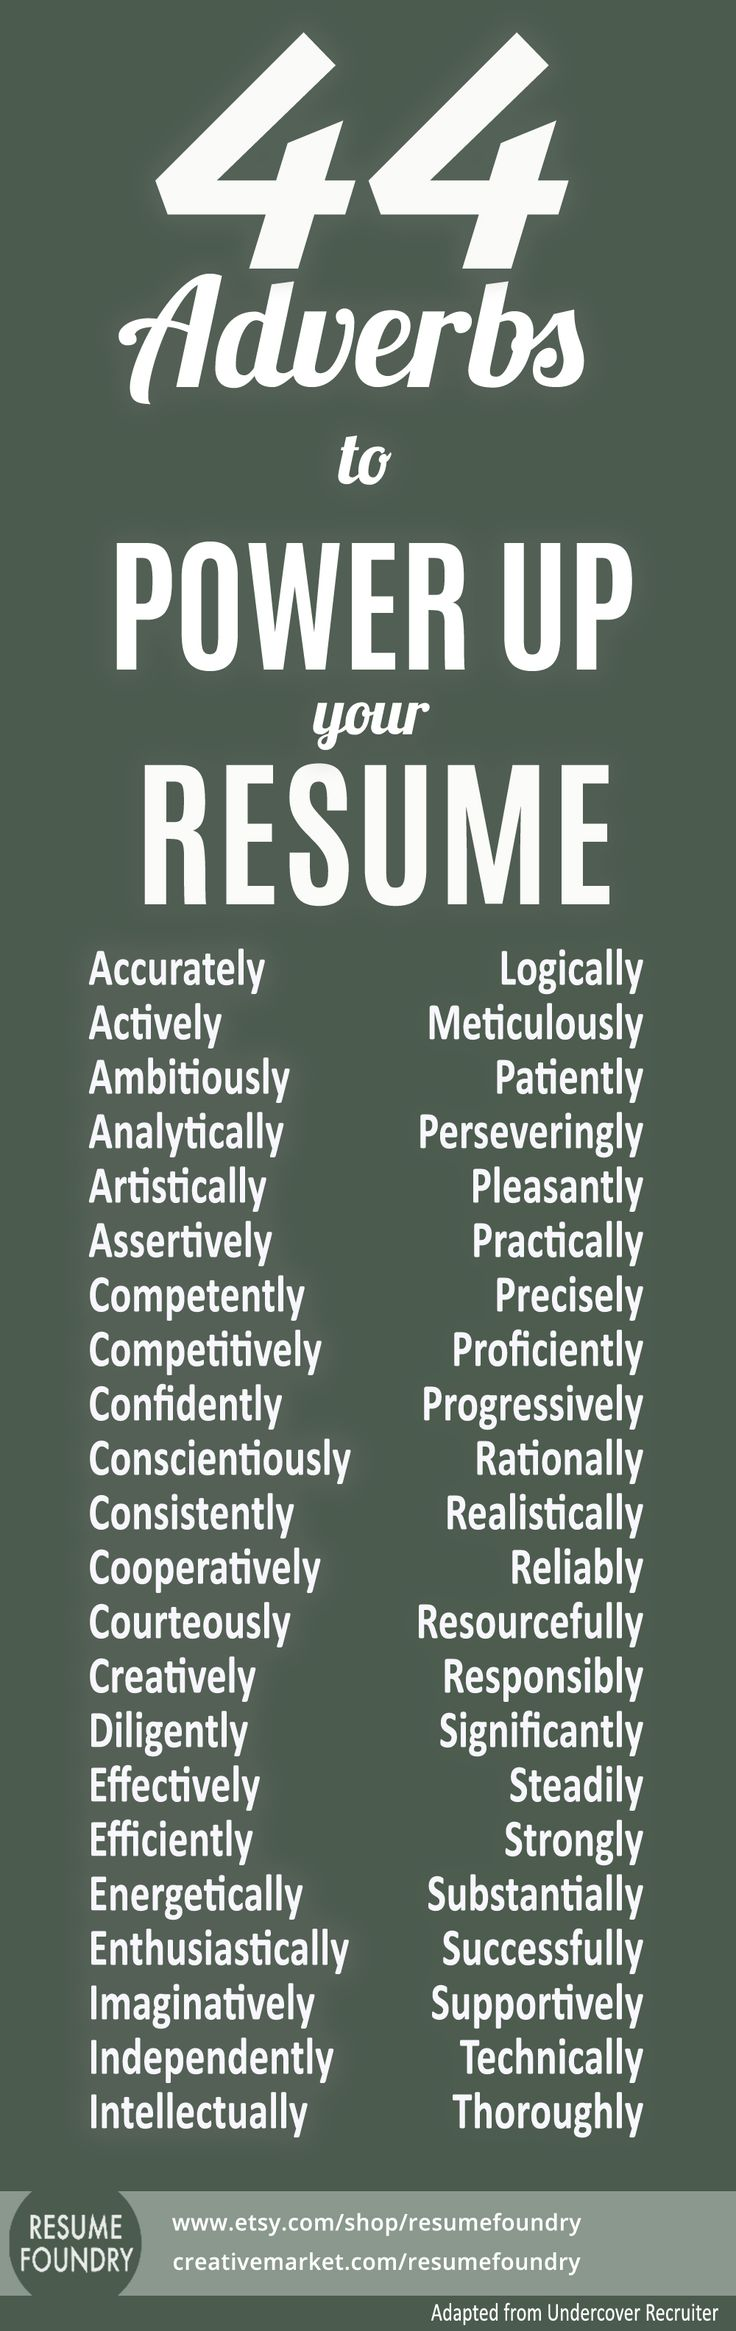 active words for resumes%0A Resume tips  resume skill words  resume verbs  resume experience